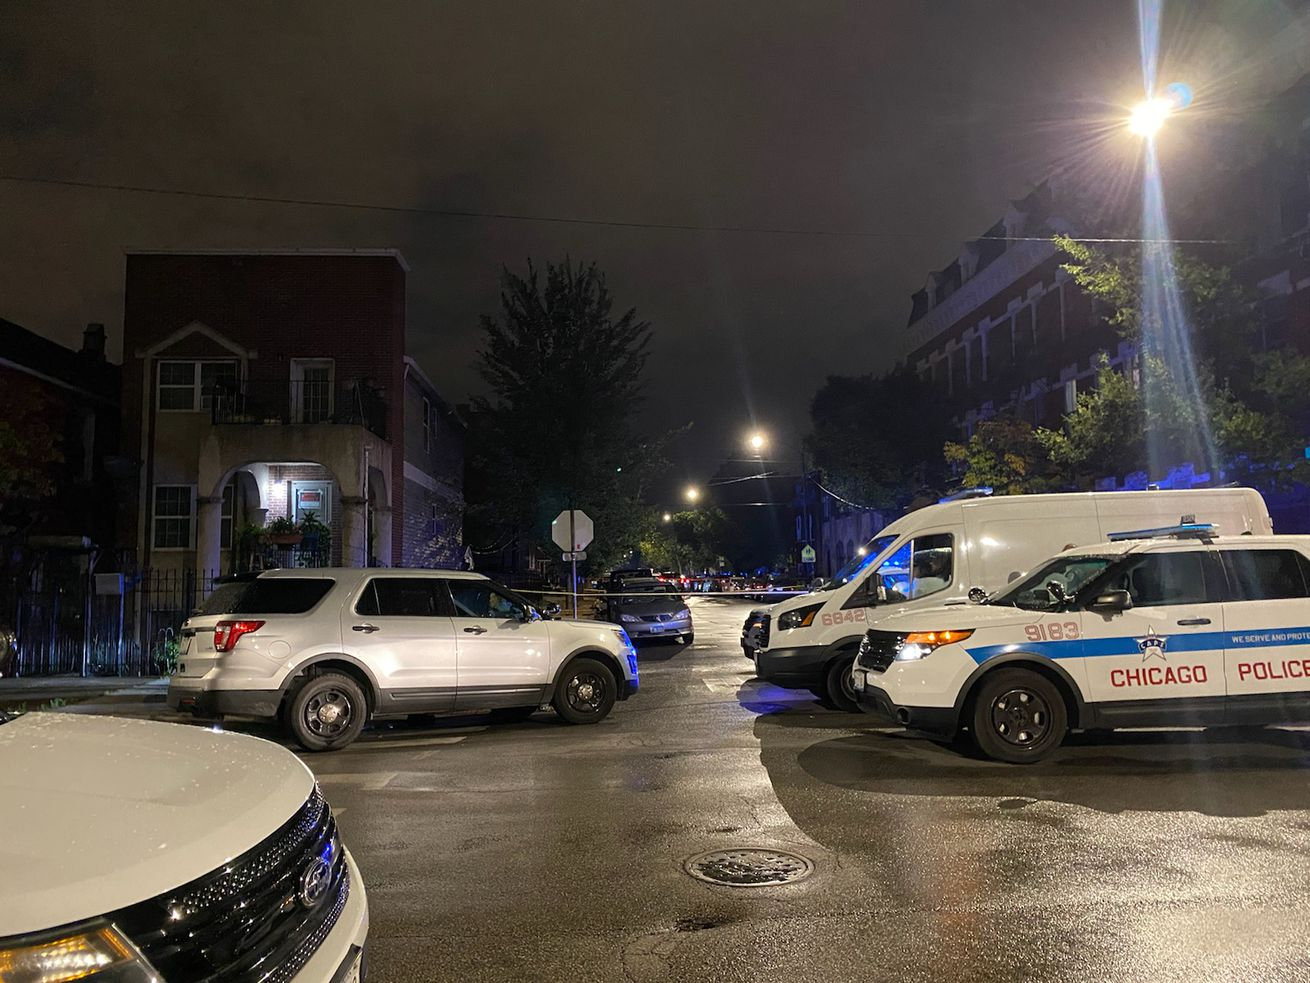 A man was killed by Chicago police during a gunfire exchange Monday, Aug. 31, 2020, in 1300 block of West 19th Street in Pilsen.